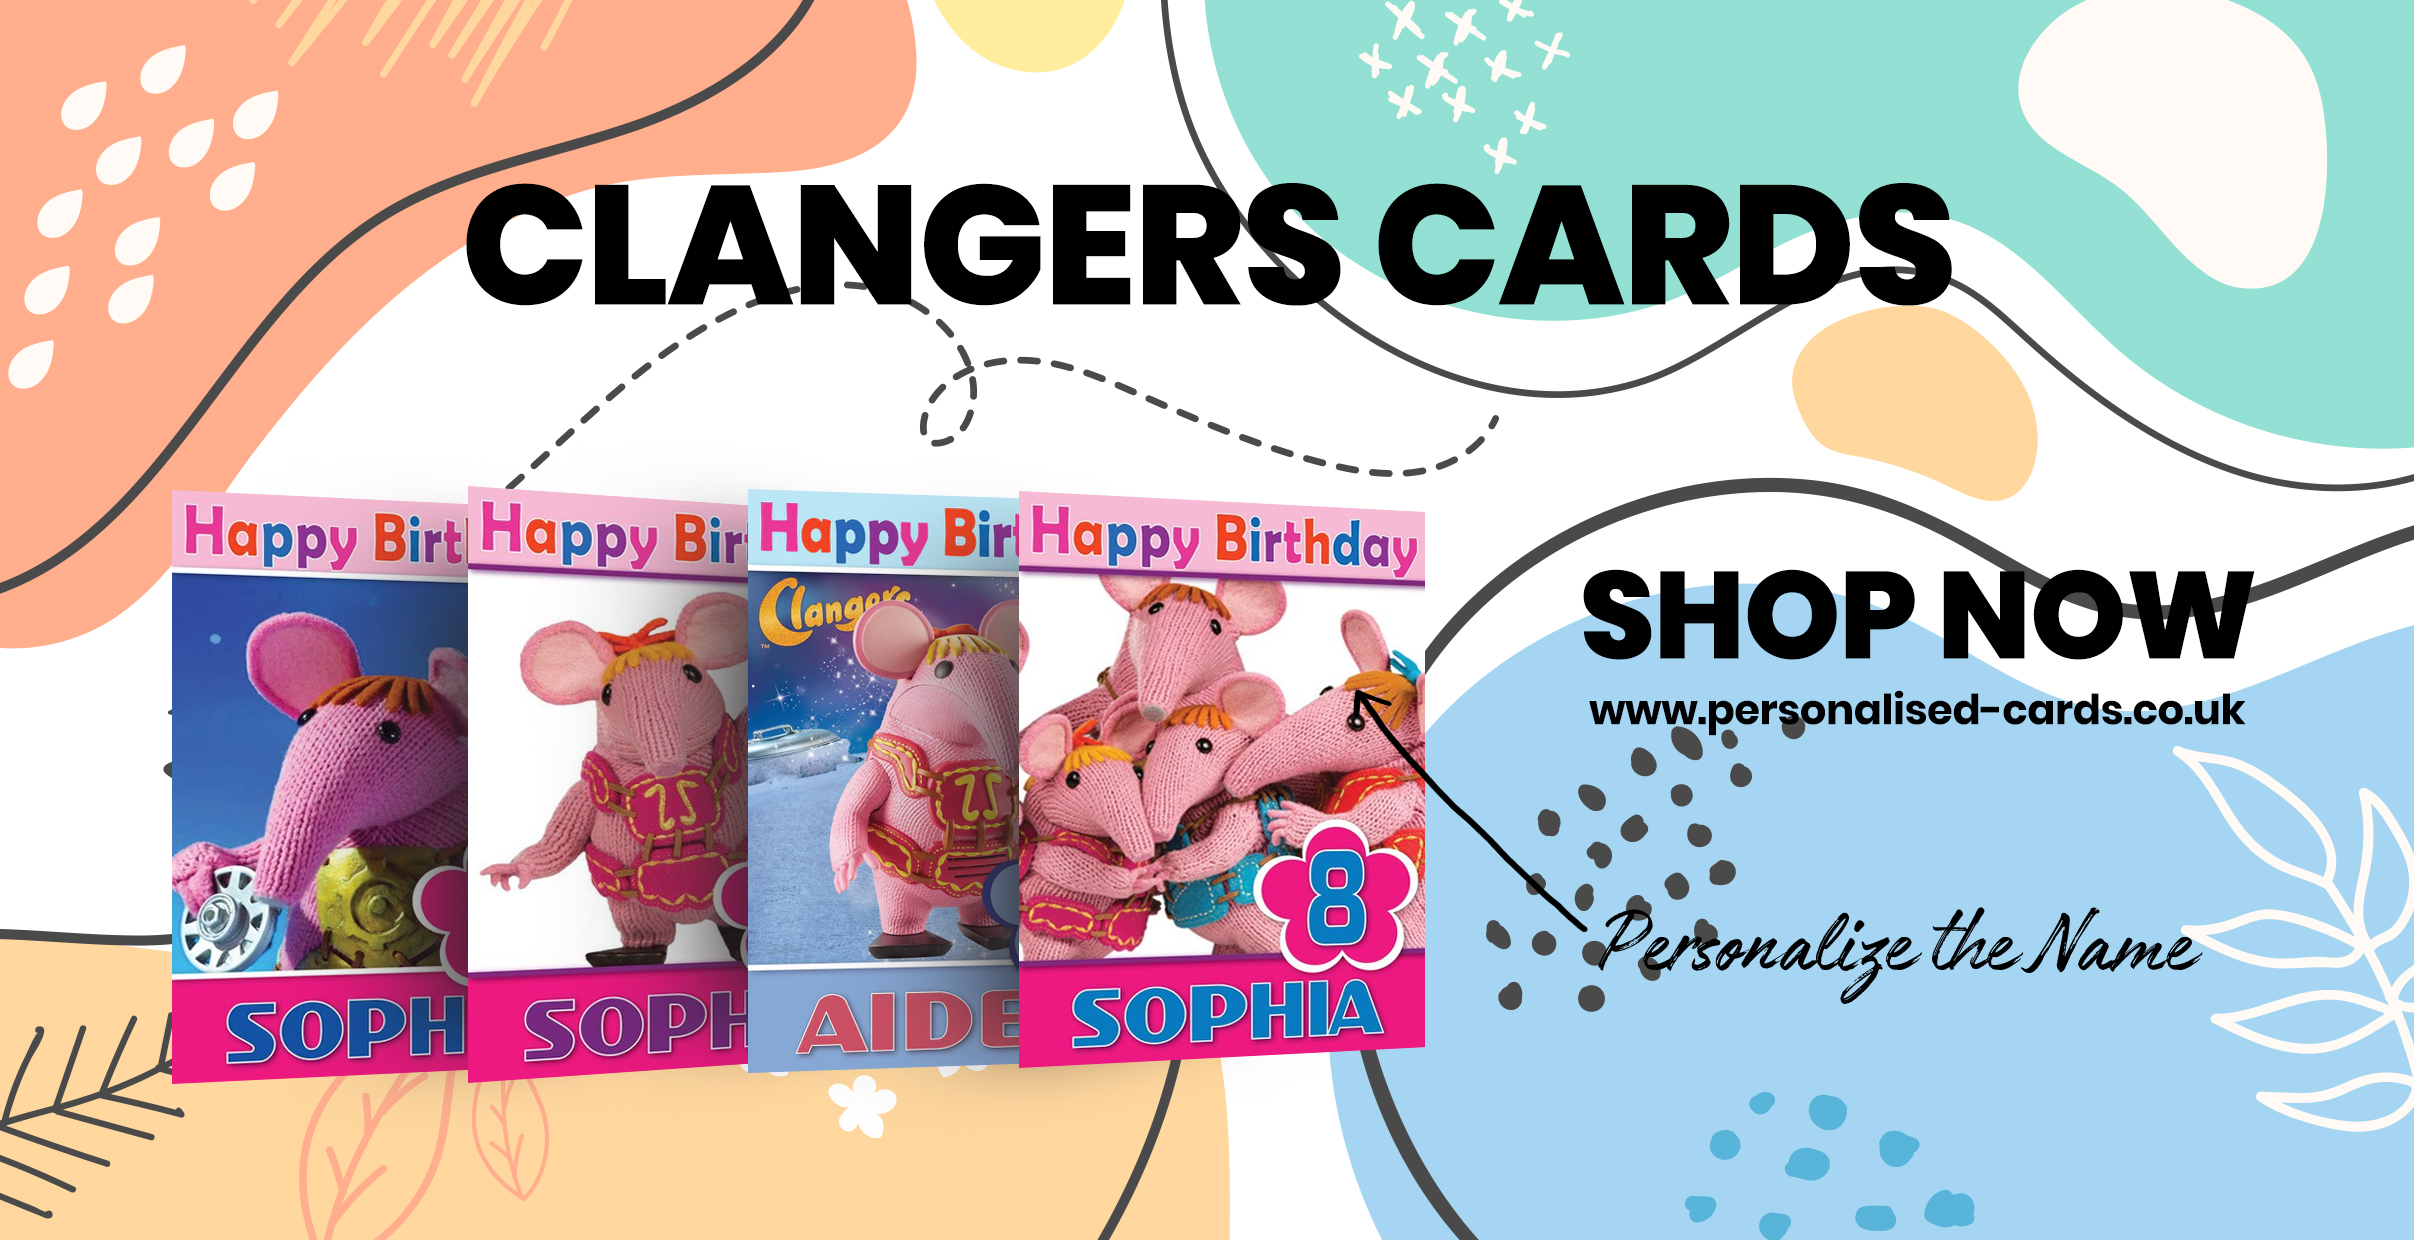 clangers-cards.jpg